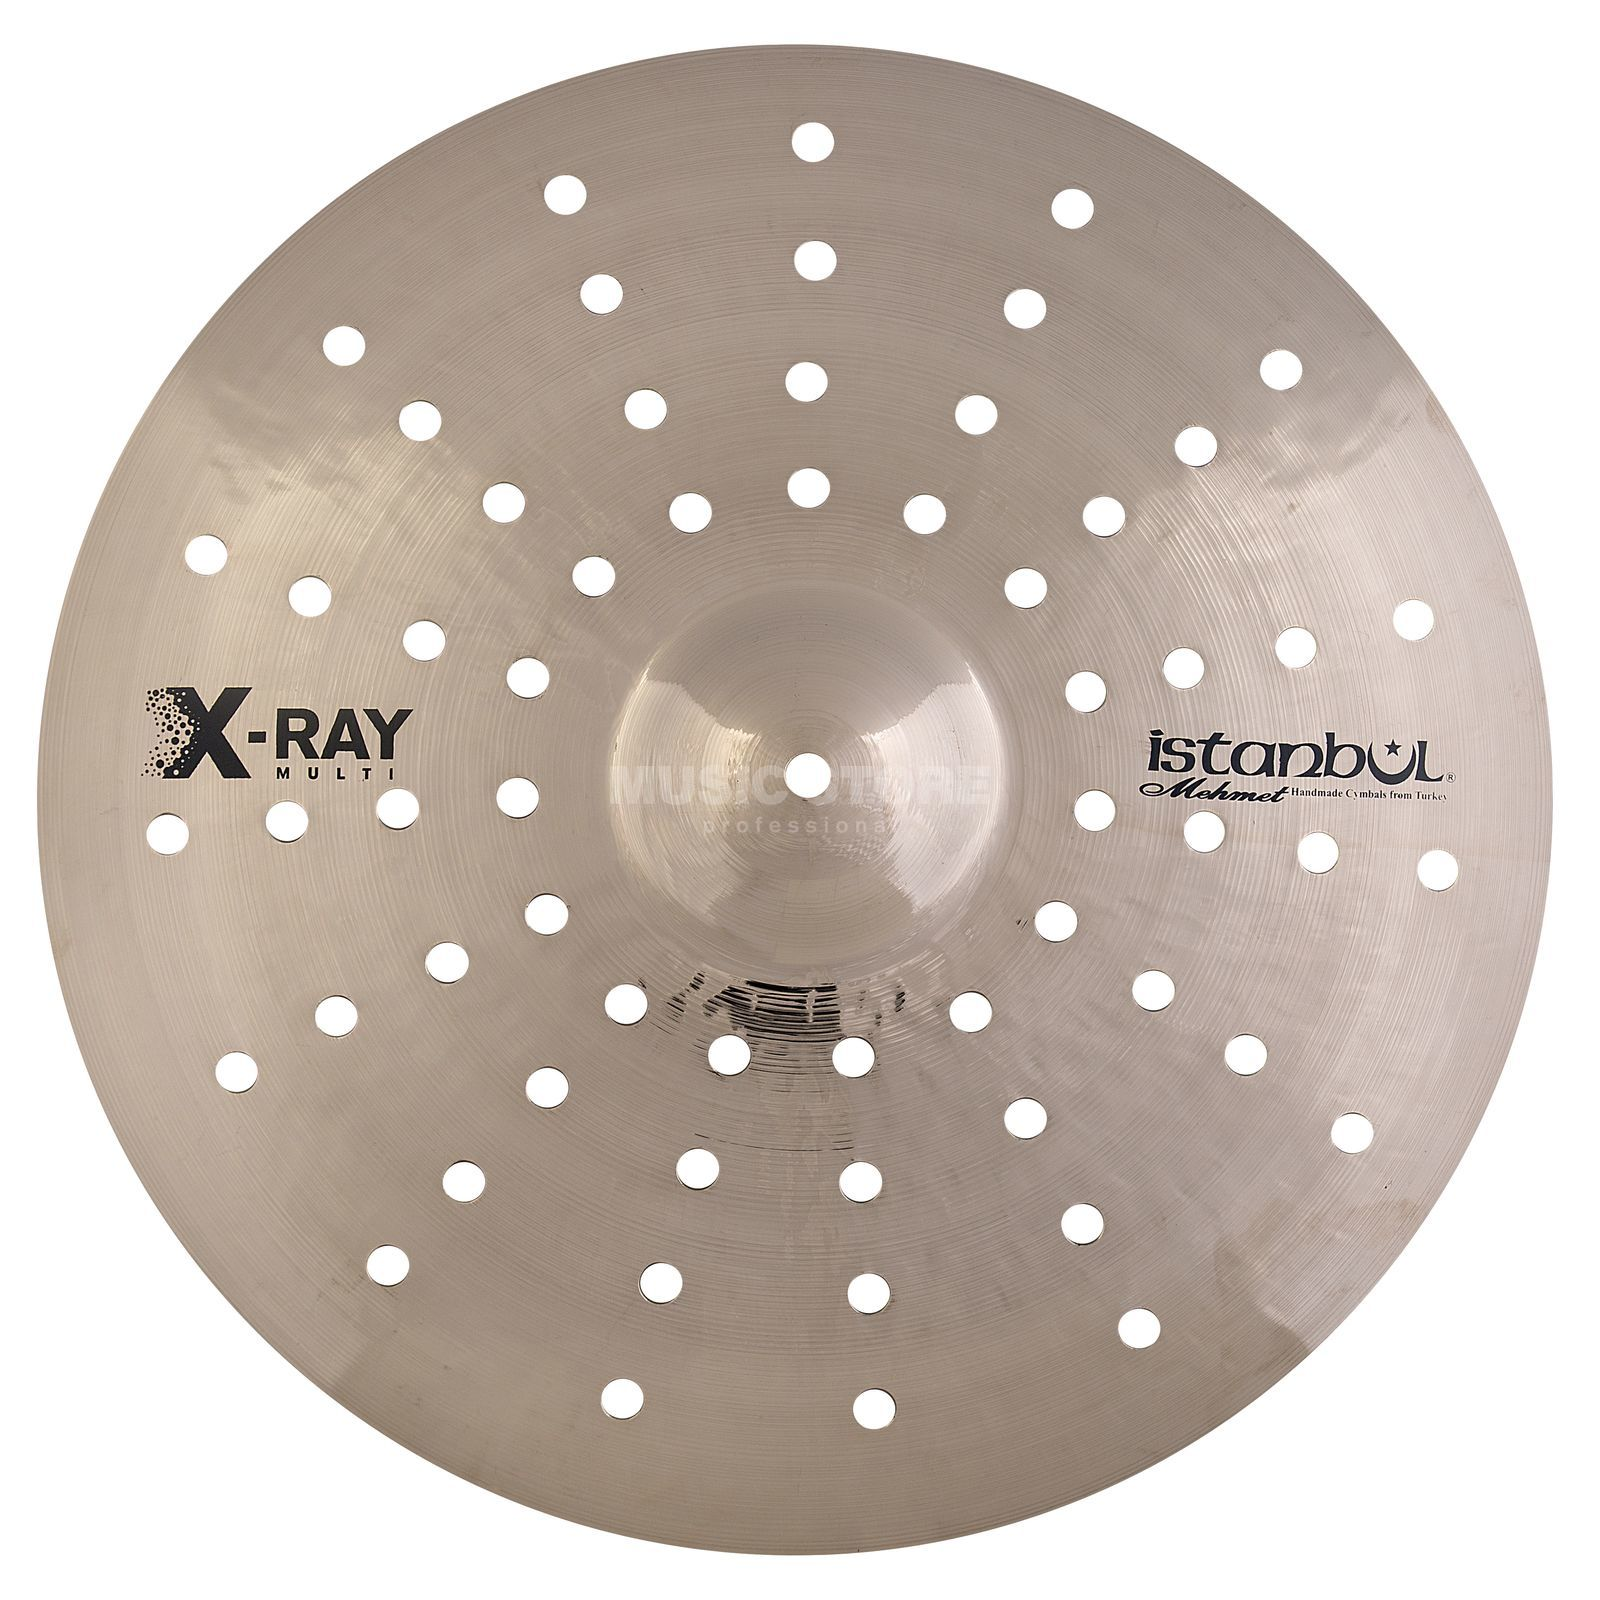 "Istanbul X-Ray Multi Crash 16"", XRAYM-C16 Product Image"